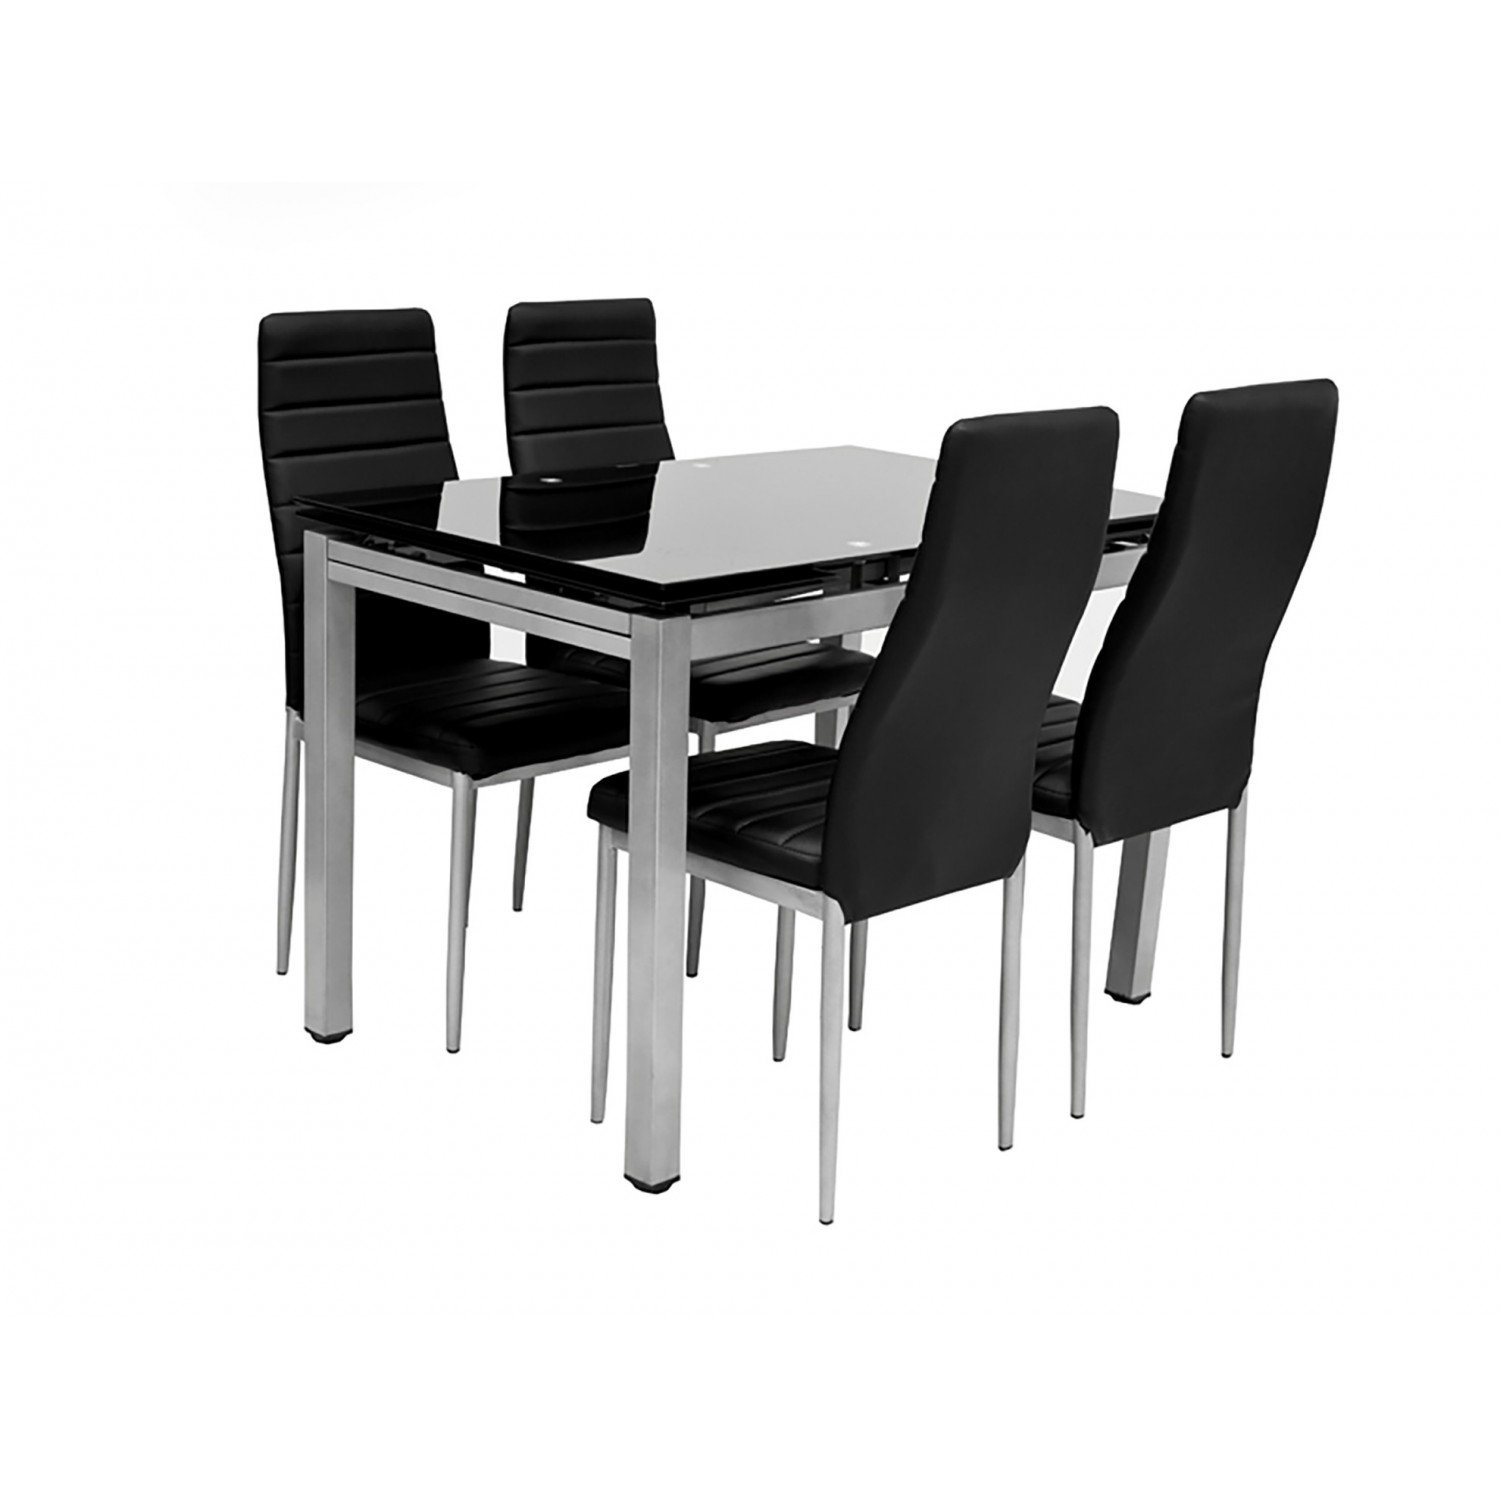 Awesome table et chaises de cuisine noire contemporary for Ensemble de table de cuisine